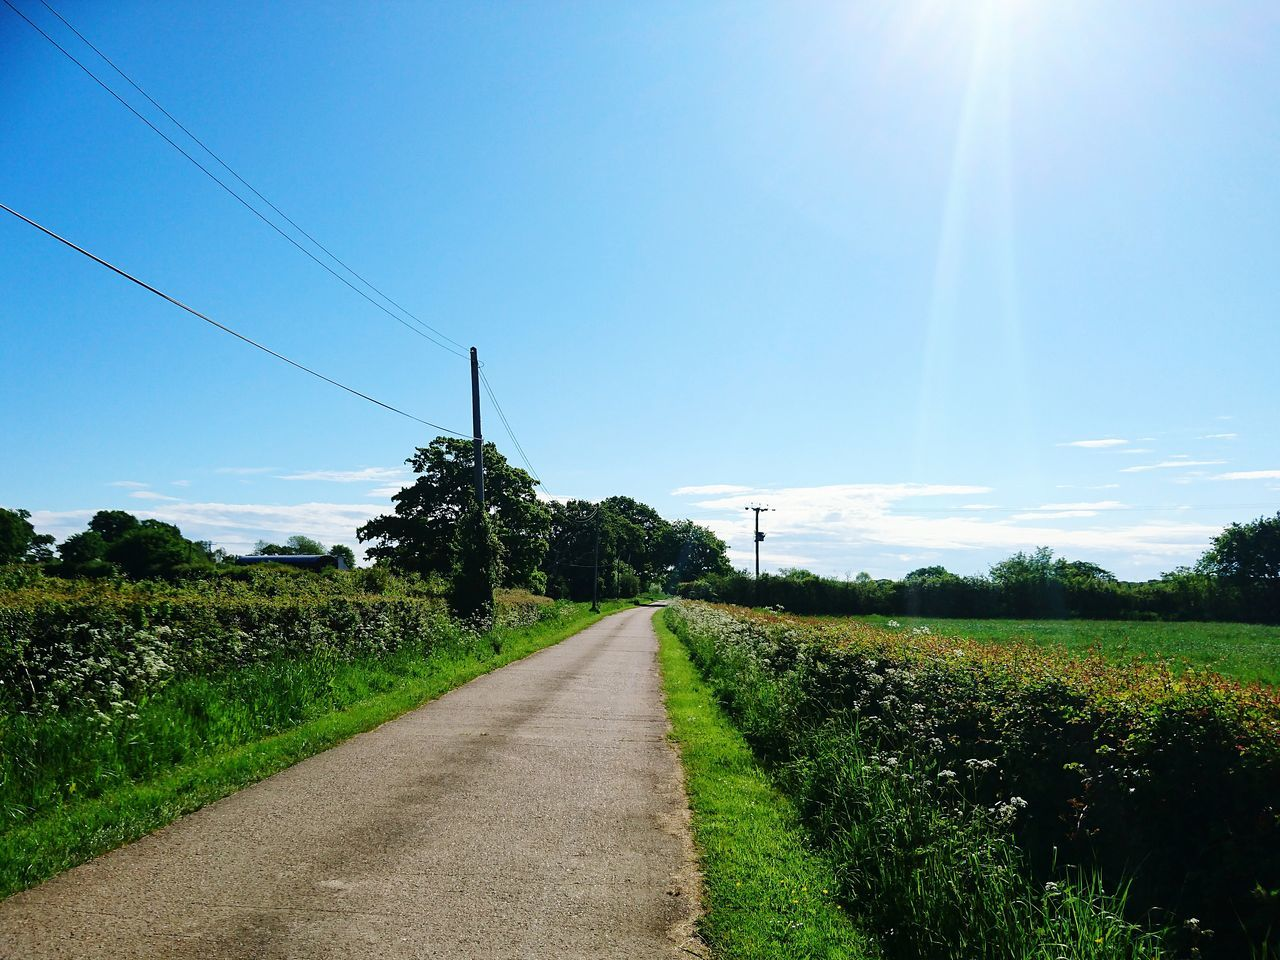 field, nature, landscape, day, the way forward, tranquility, tranquil scene, agriculture, sky, beauty in nature, growth, rural scene, no people, outdoors, scenics, tree, sunlight, road, grass, clear sky